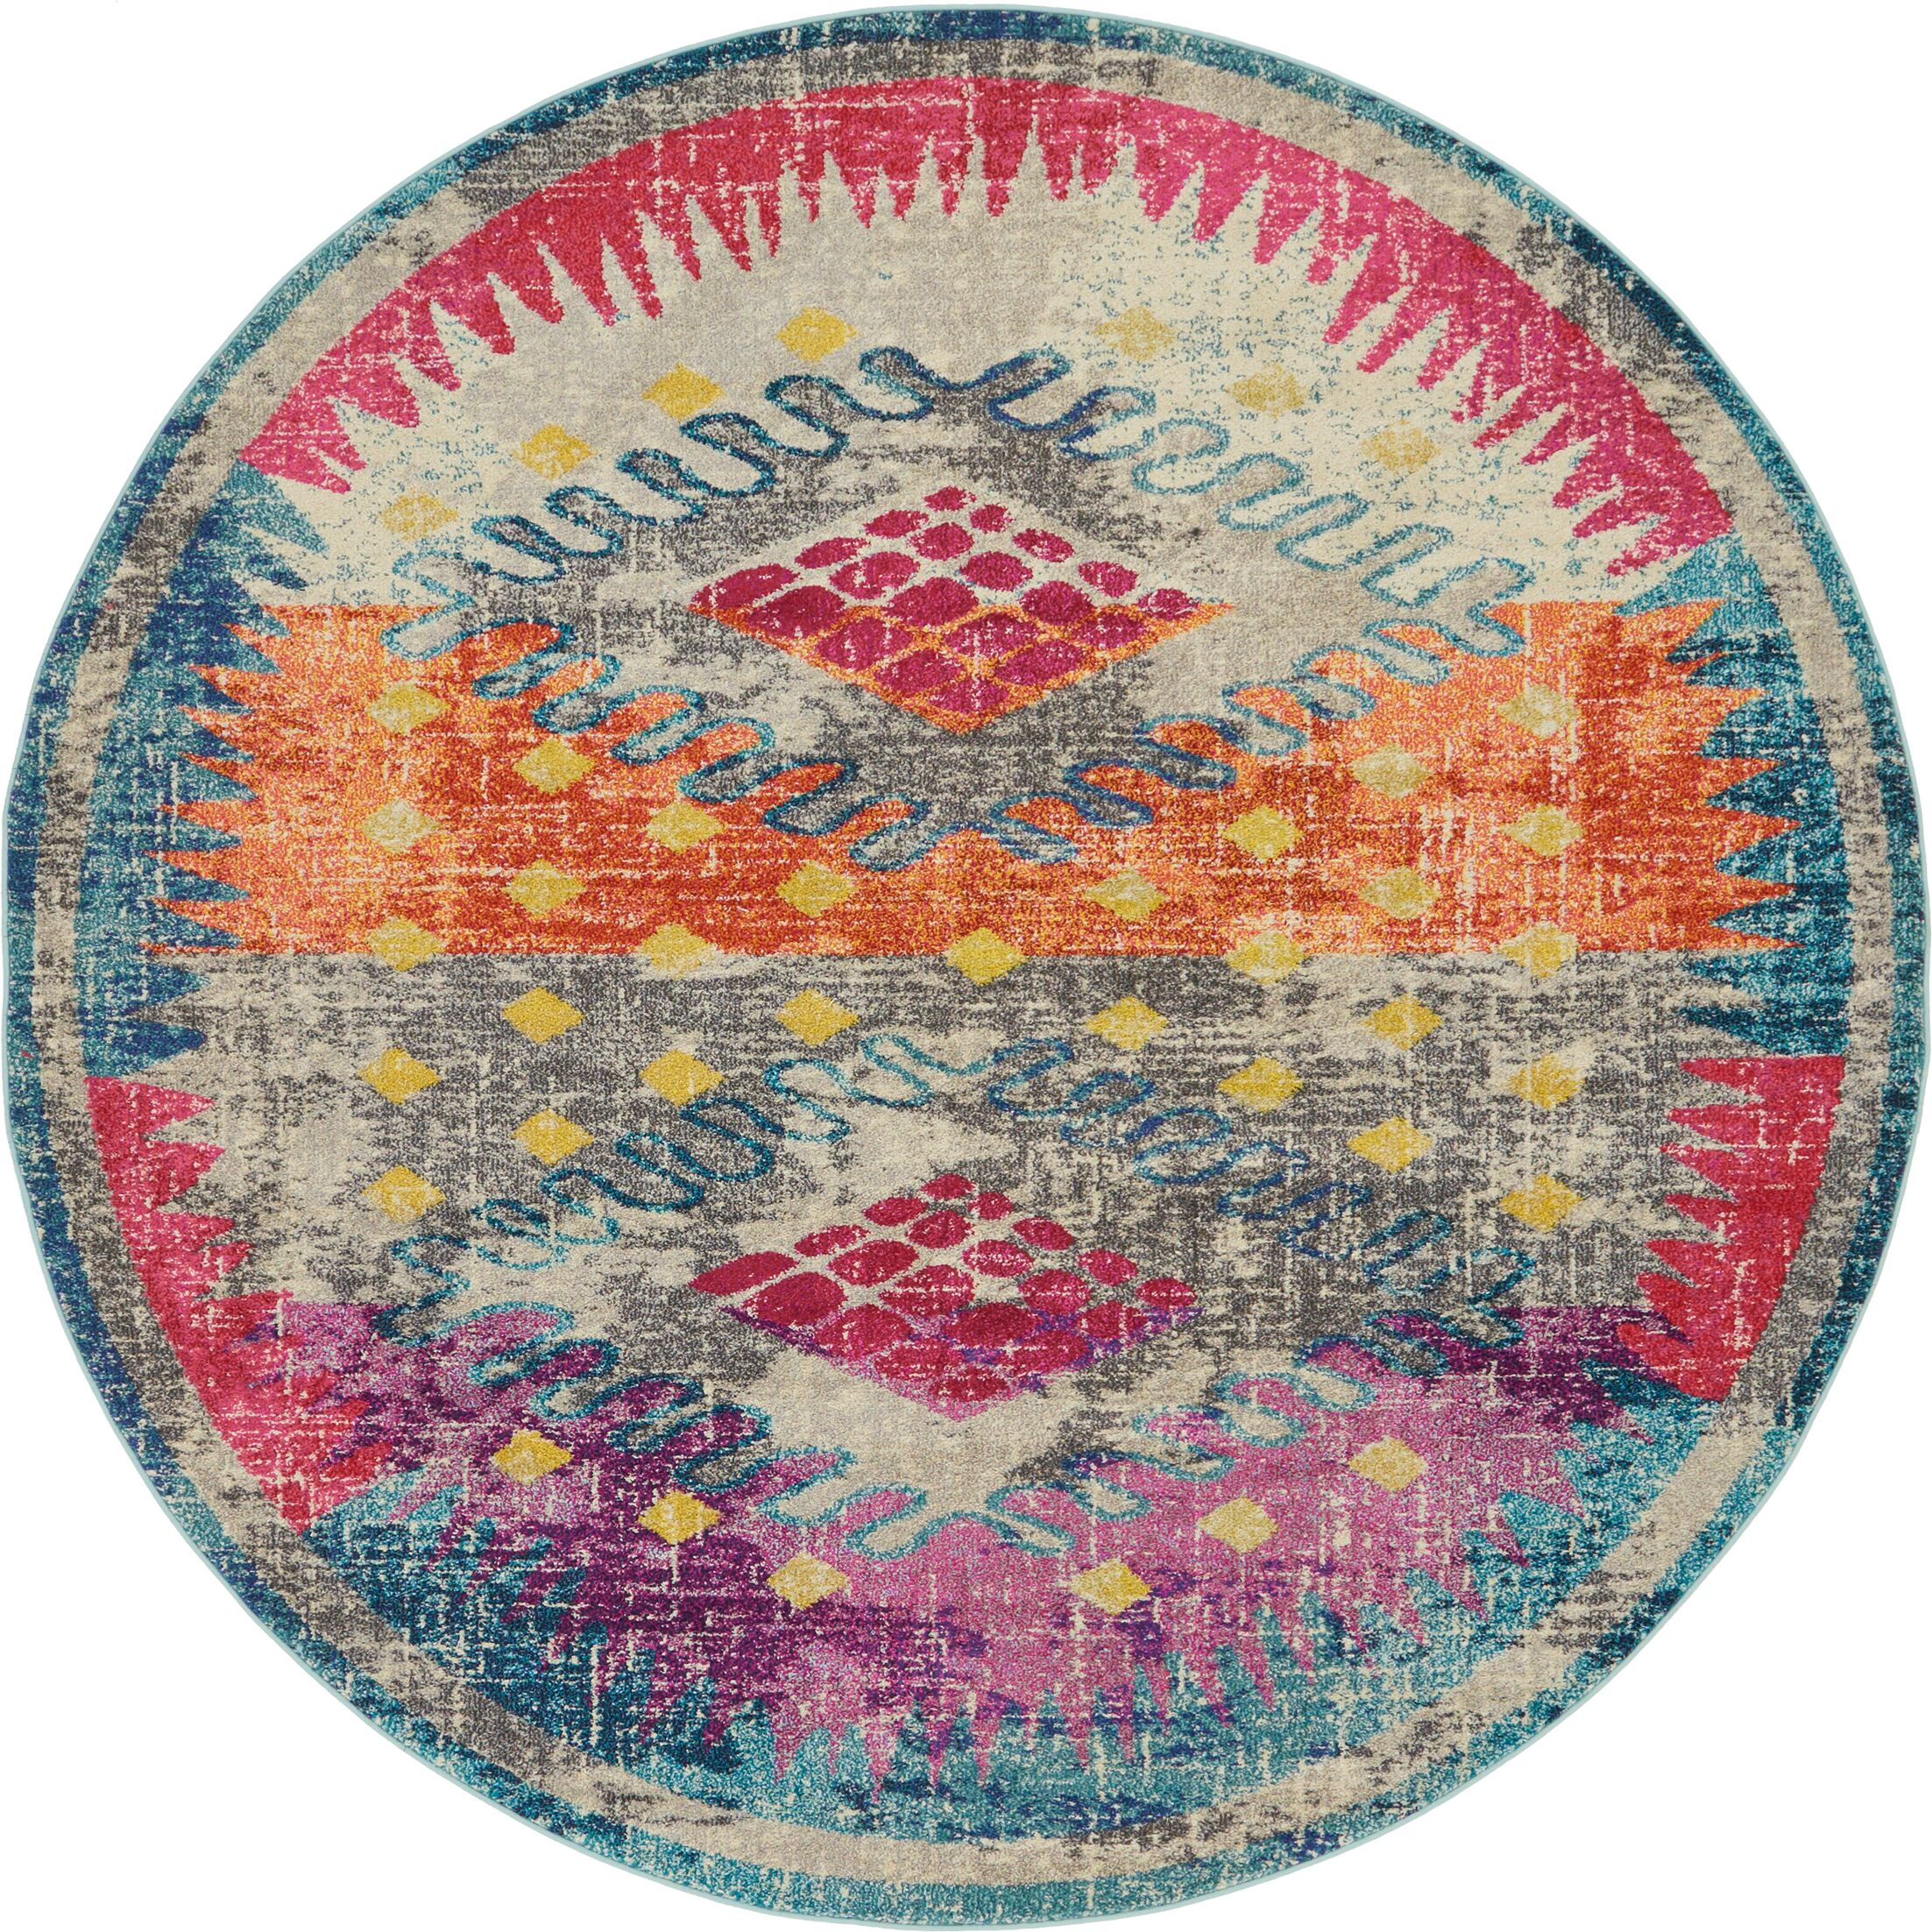 Cassava Purple/Orange/Blue Area Rug Rug Size: Round 8' x 8'